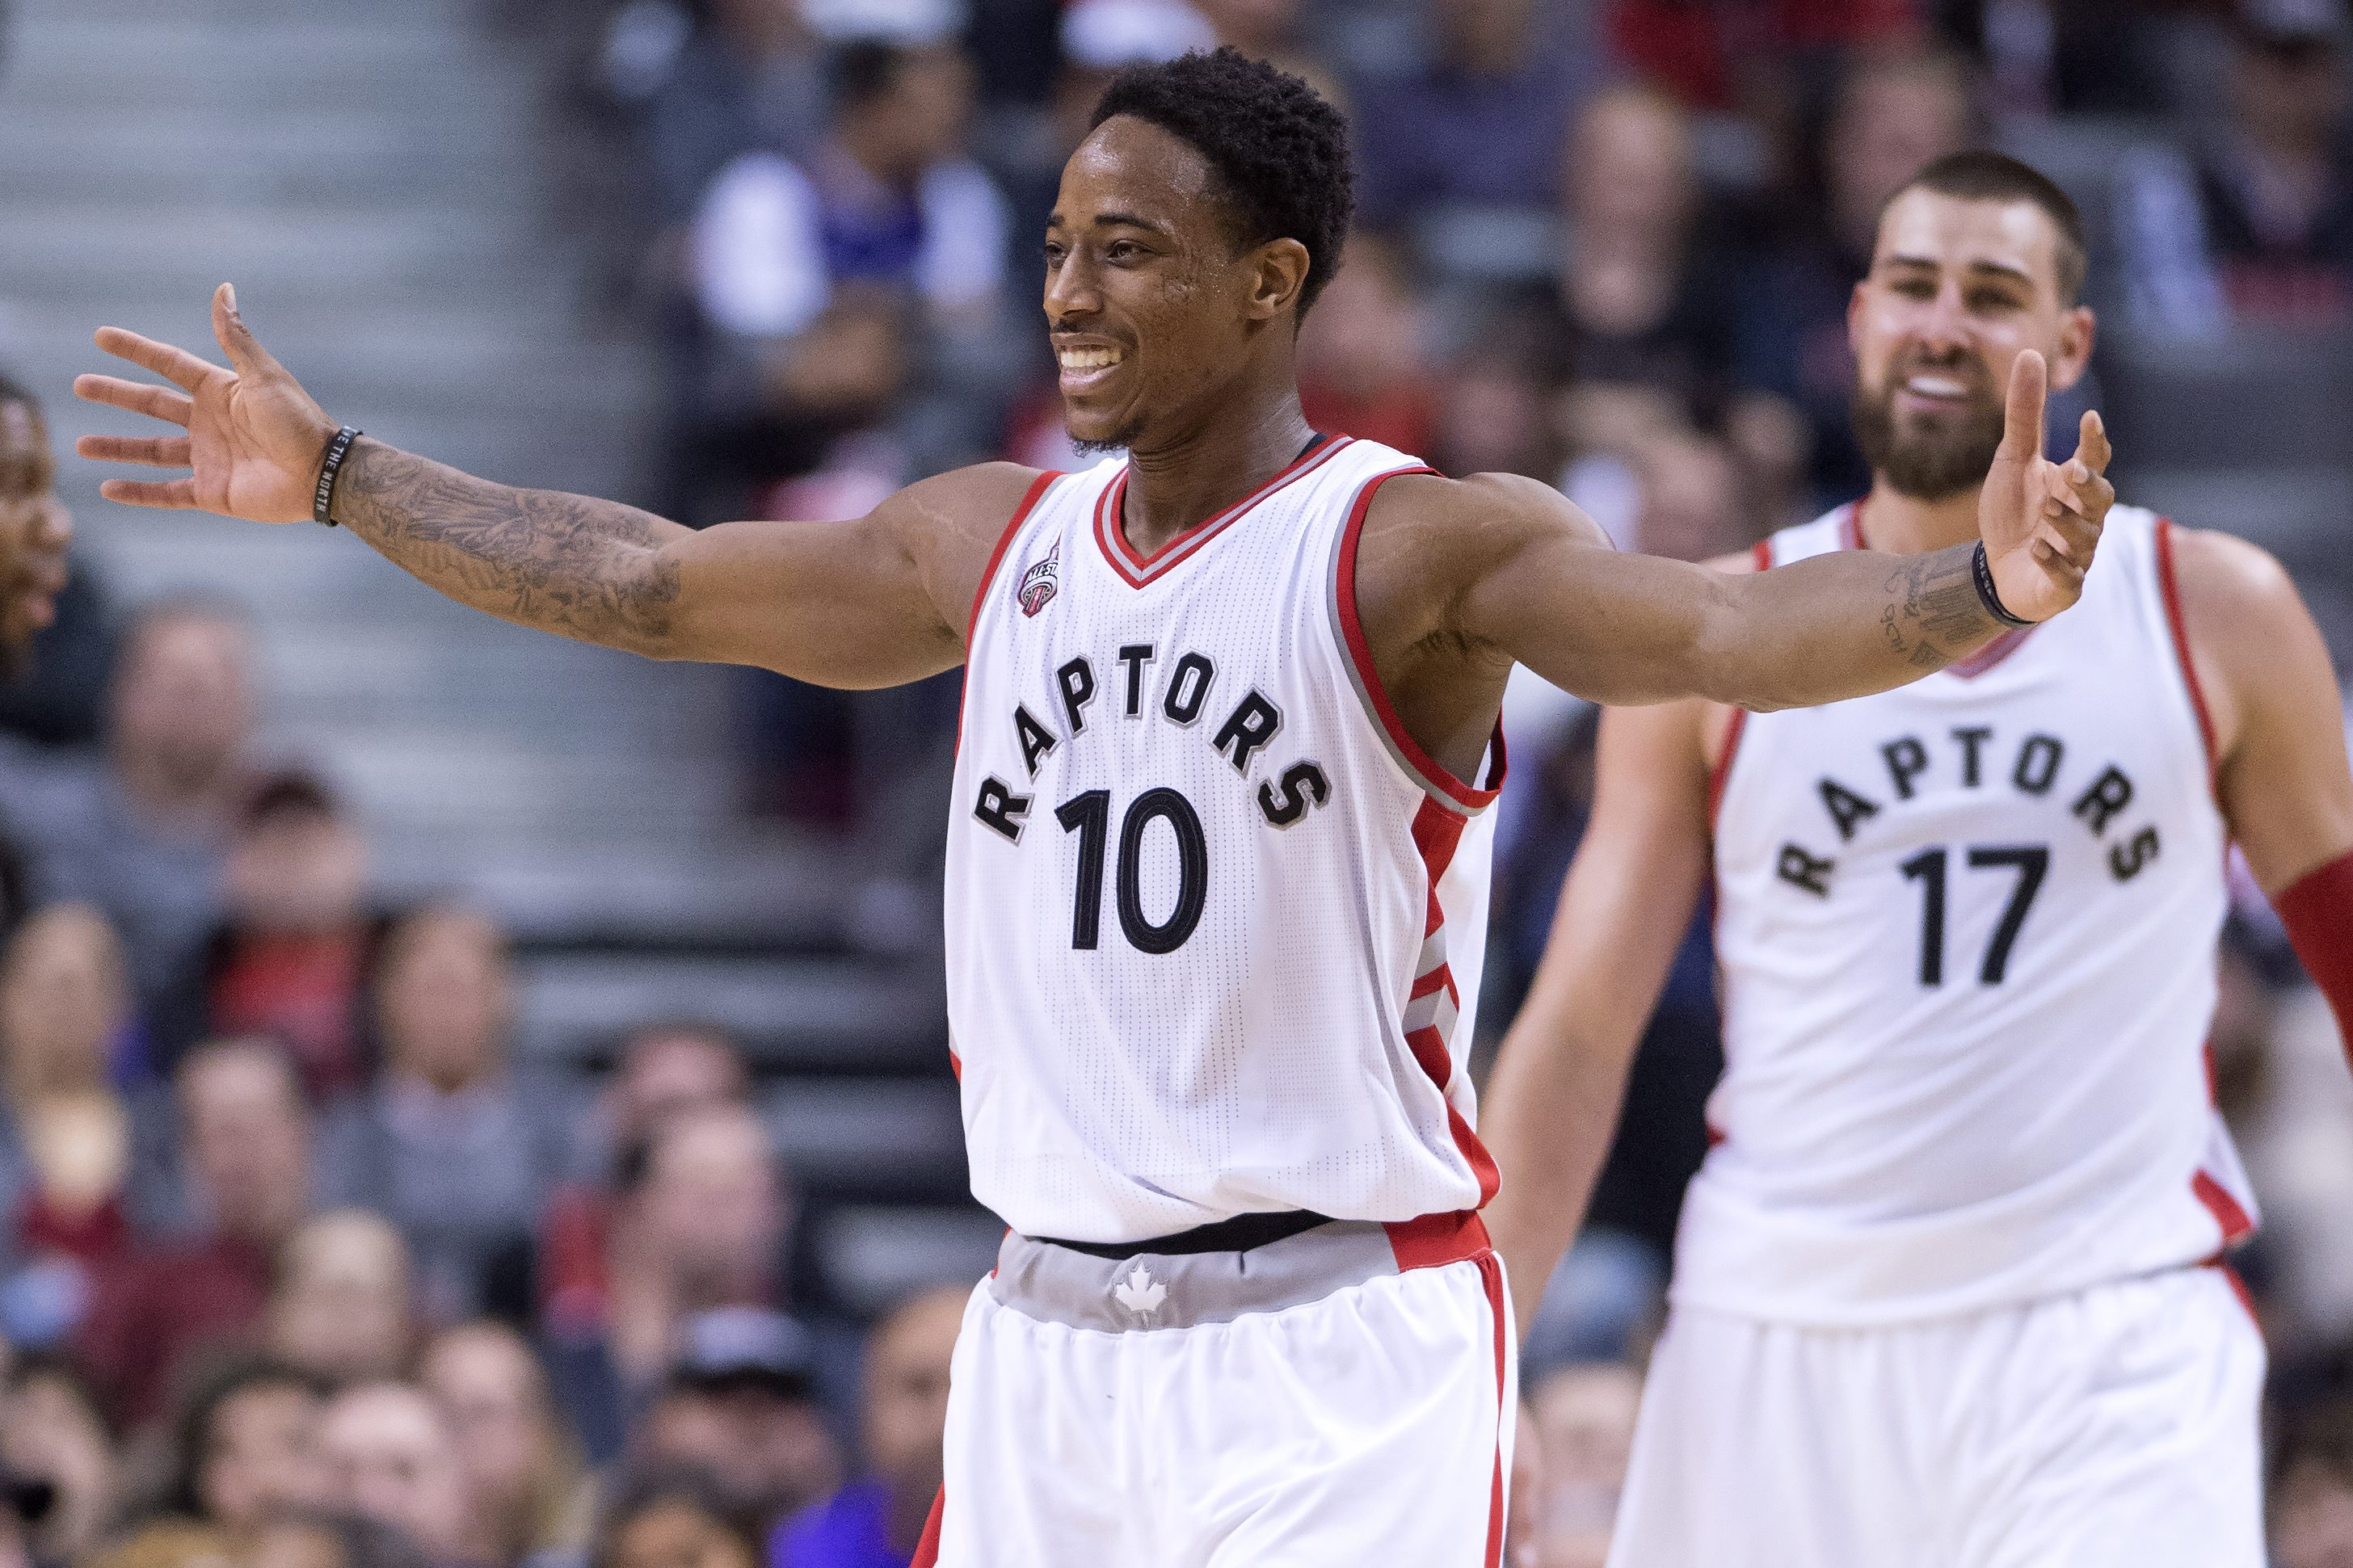 Toronto Raptors guard DeMar DeRozan and Jonas Valanciunas (17) celebrate a play during second half of an NBA basketball game against the Milwaukee Bucks in Toronto, Sunday, Nov. 1, 2015. (Frank Gunn/The Canadian Press via AP) MANDATORY CREDIT